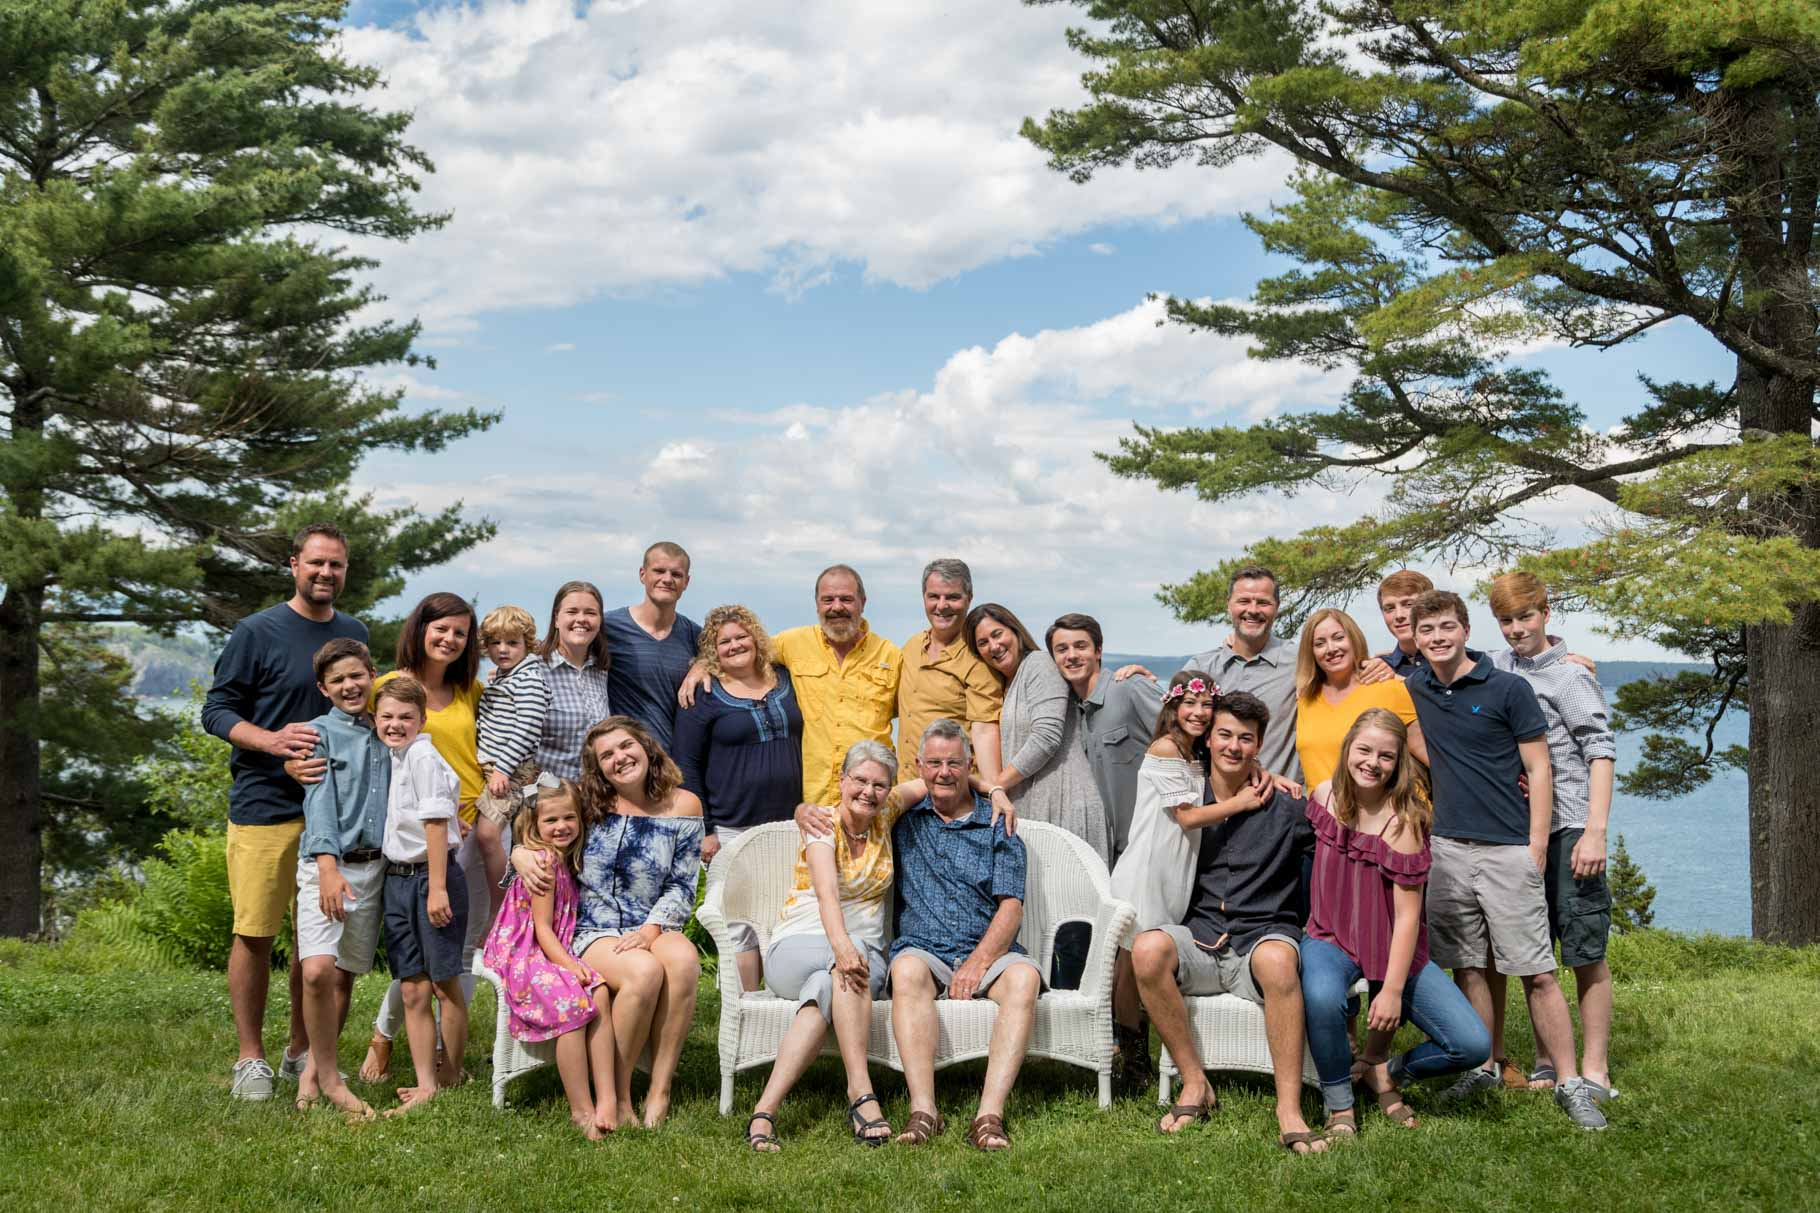 Maine Family Portraits: What to wear - Rene Roy Photography, Inc